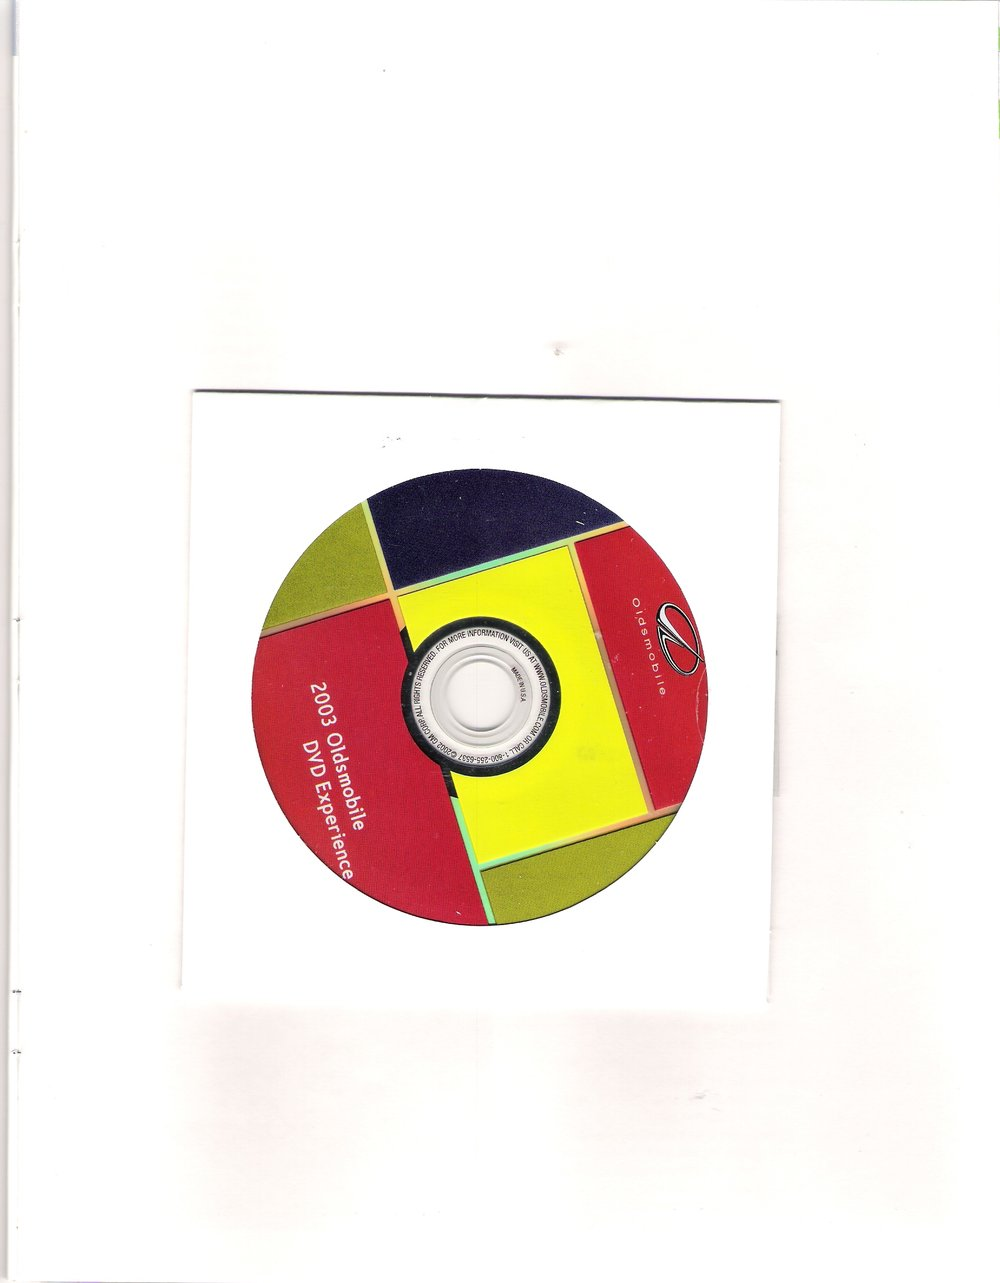 GM edge mag olds dvd insert for ad.jpg